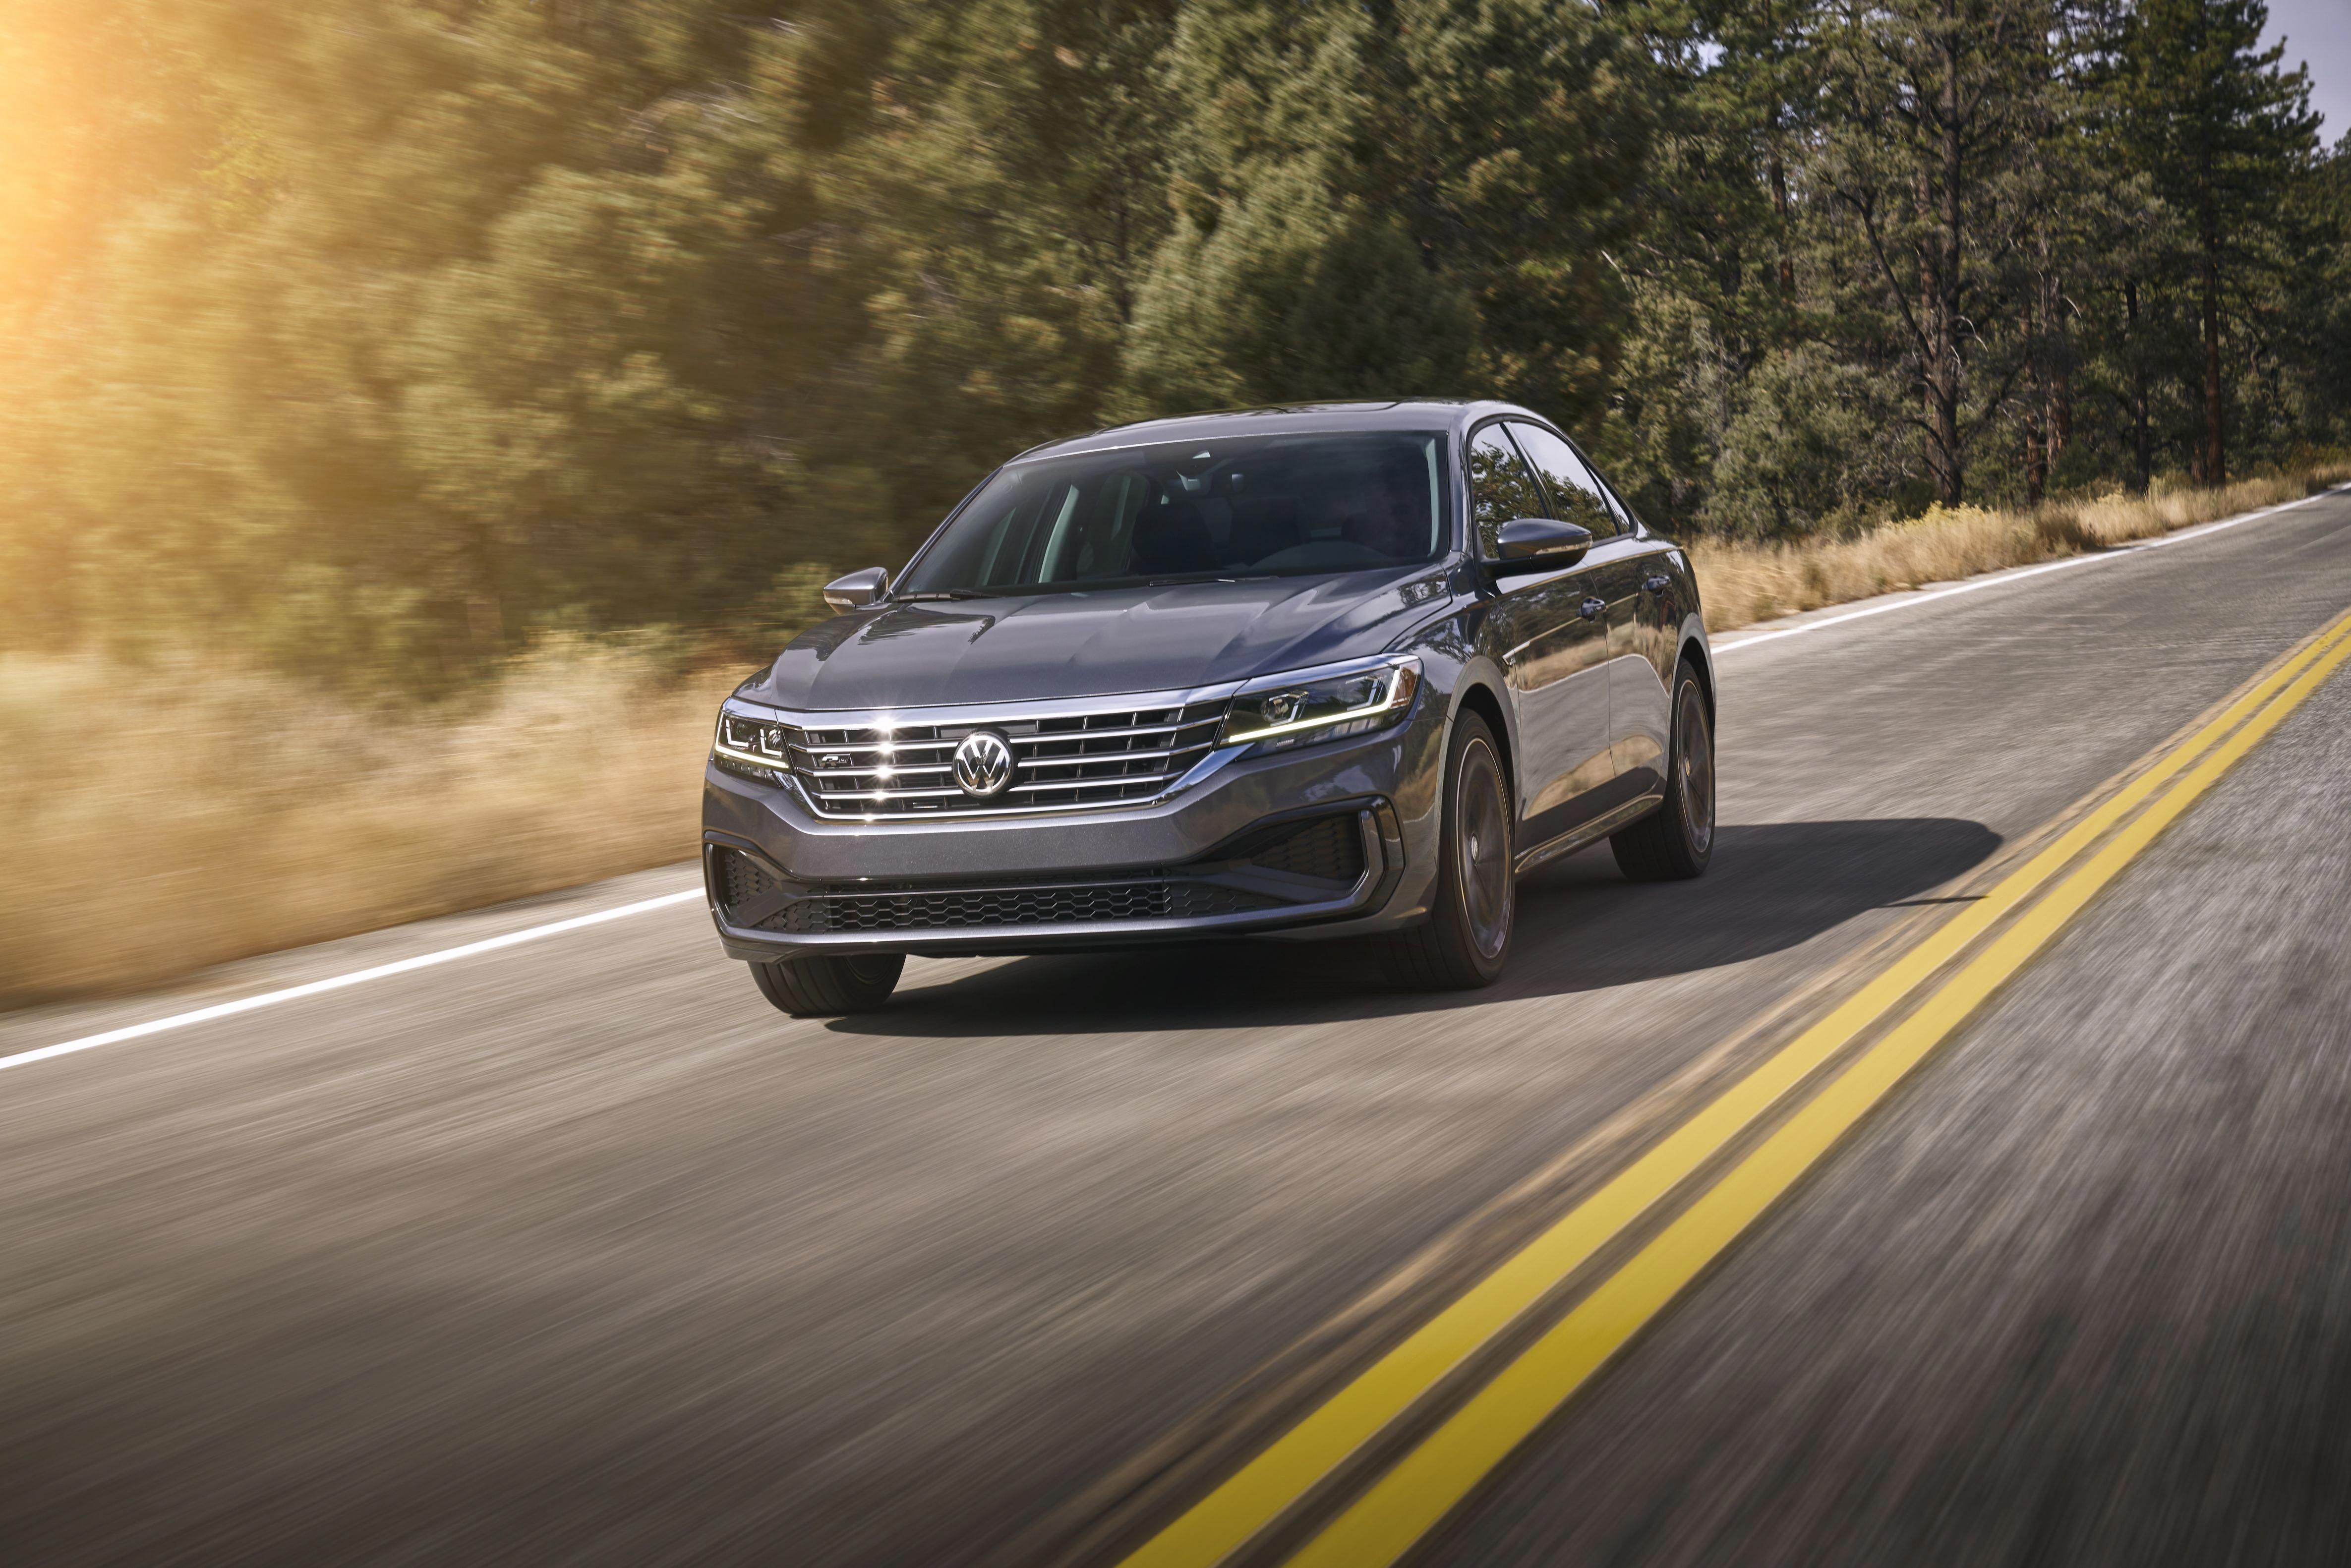 The All New 2020 Volkswagen Passat Has Made Its Debut Photo Courtesy Of Volkswagen Automotive Media Volkswagenpassa Volkswagen Volkswagen Passat Vw Passat